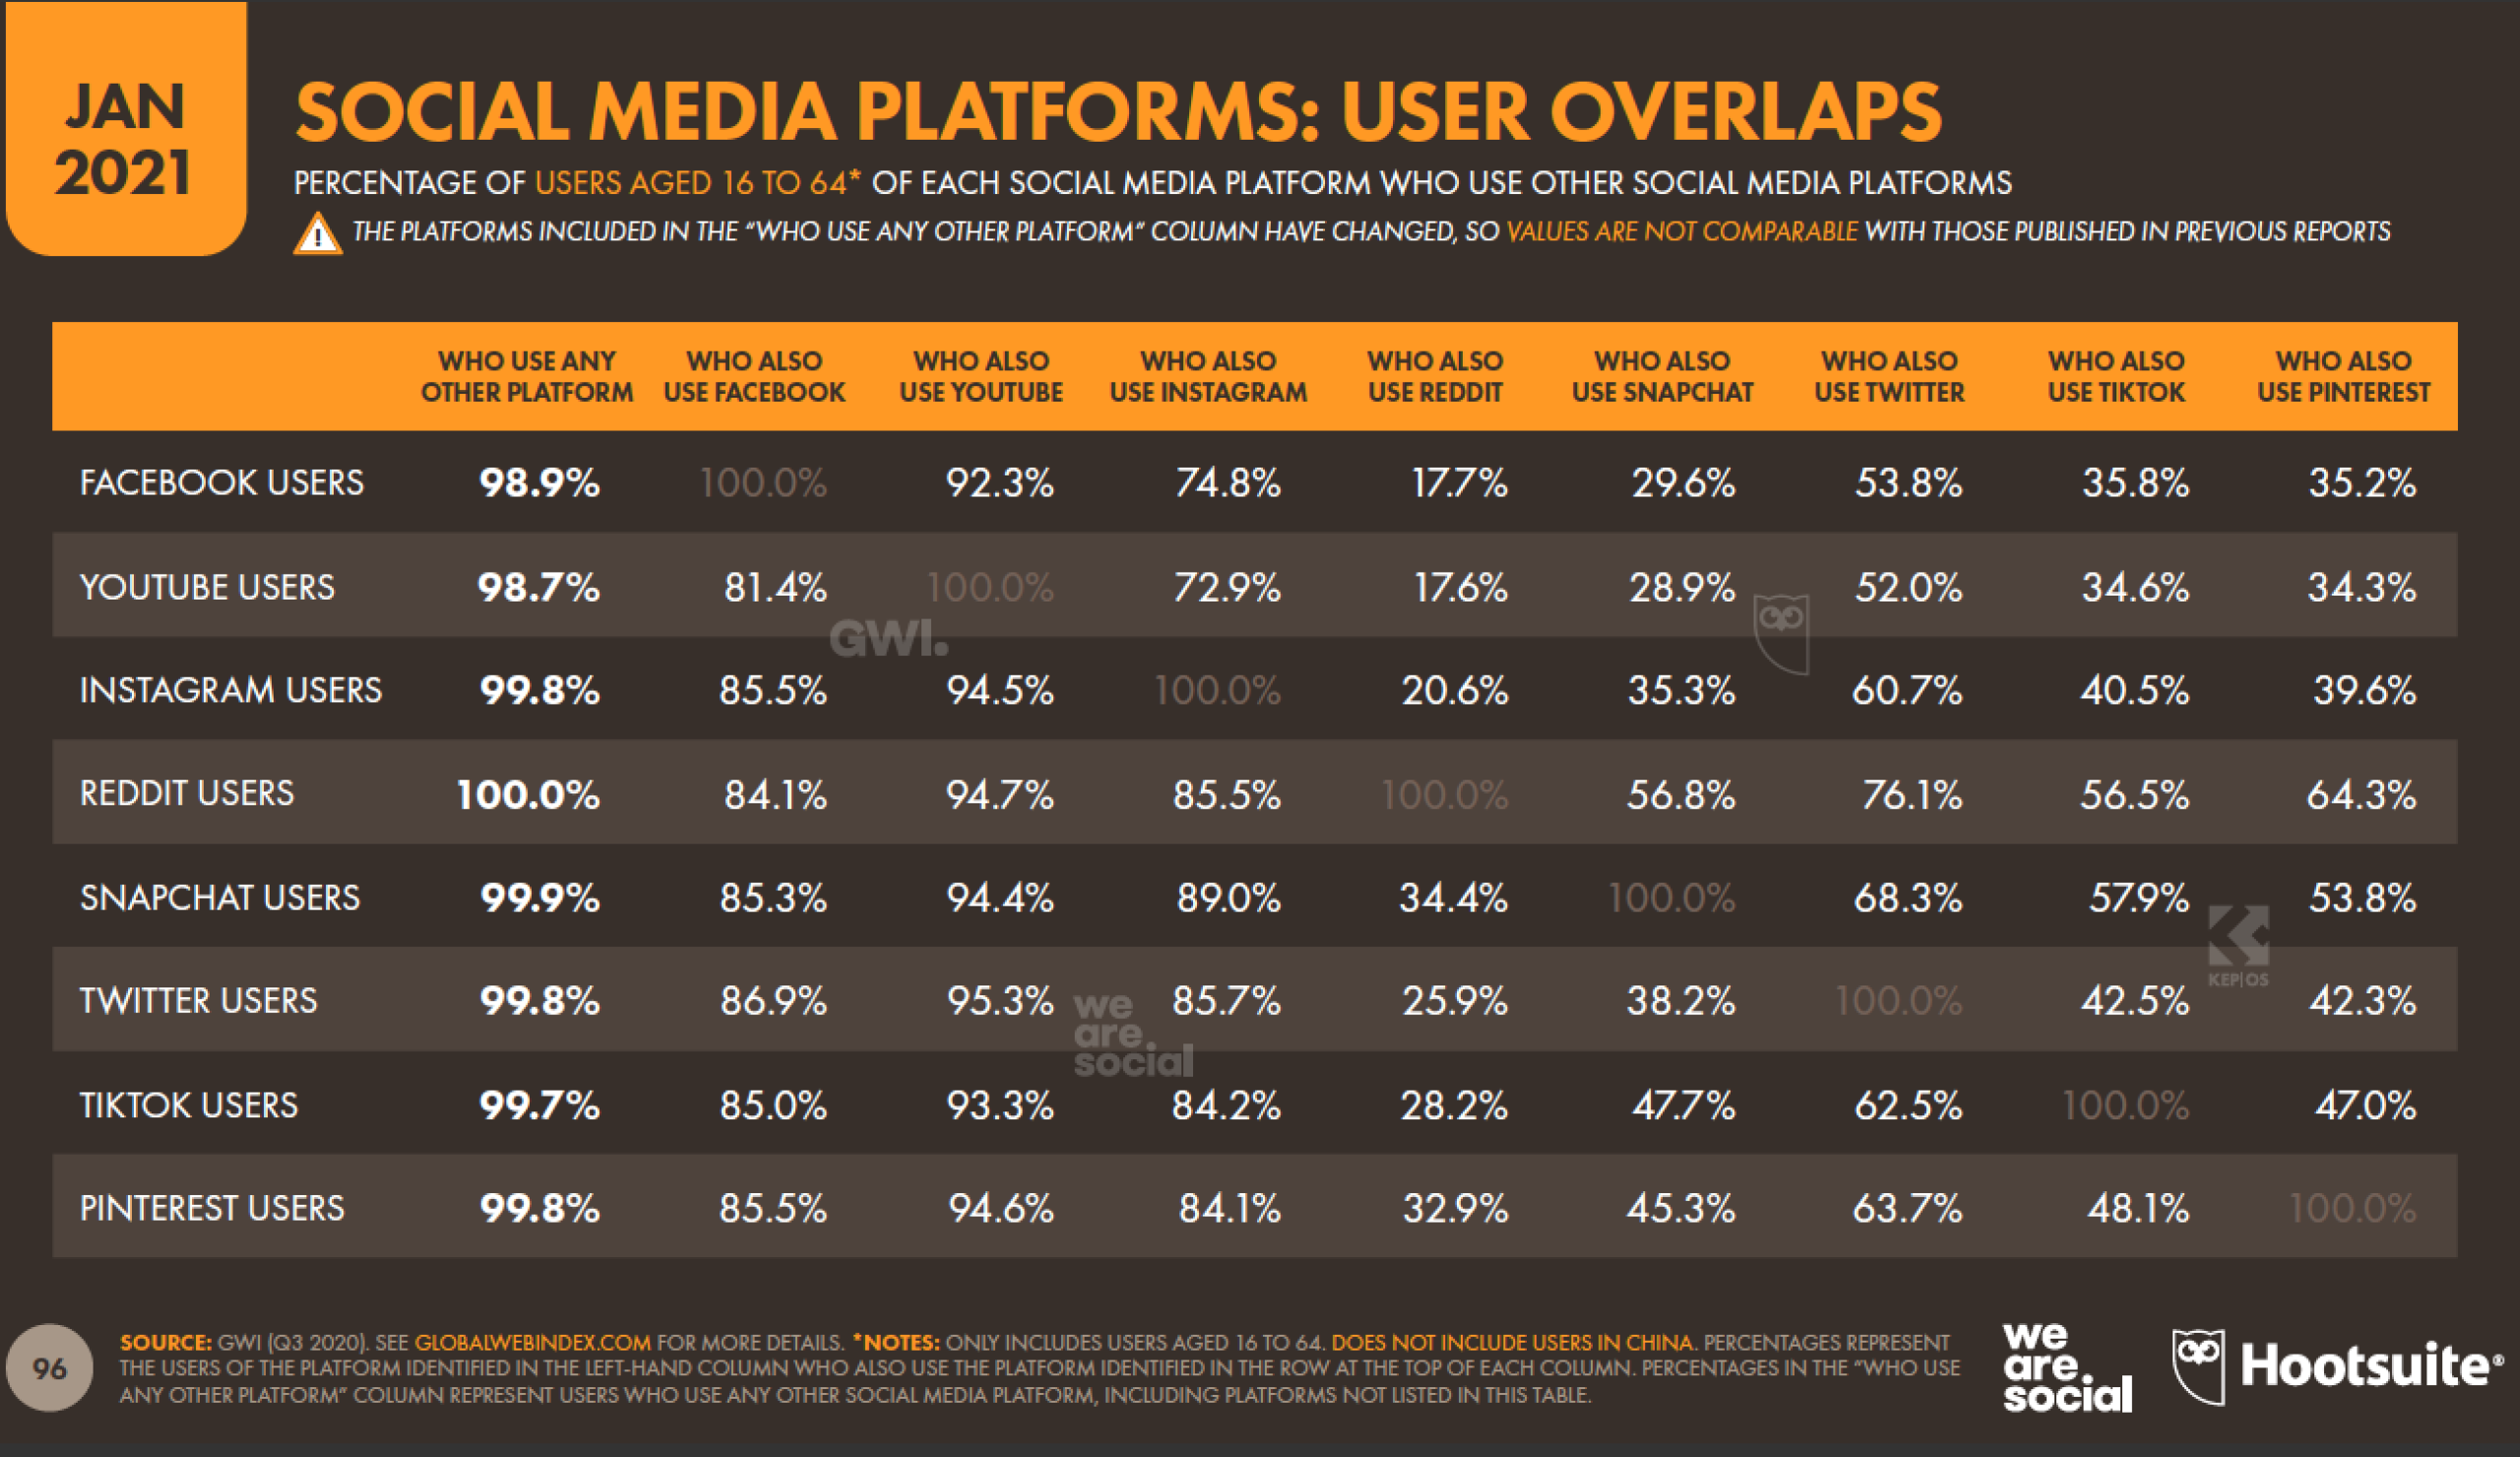 user overlaps on social media platforms